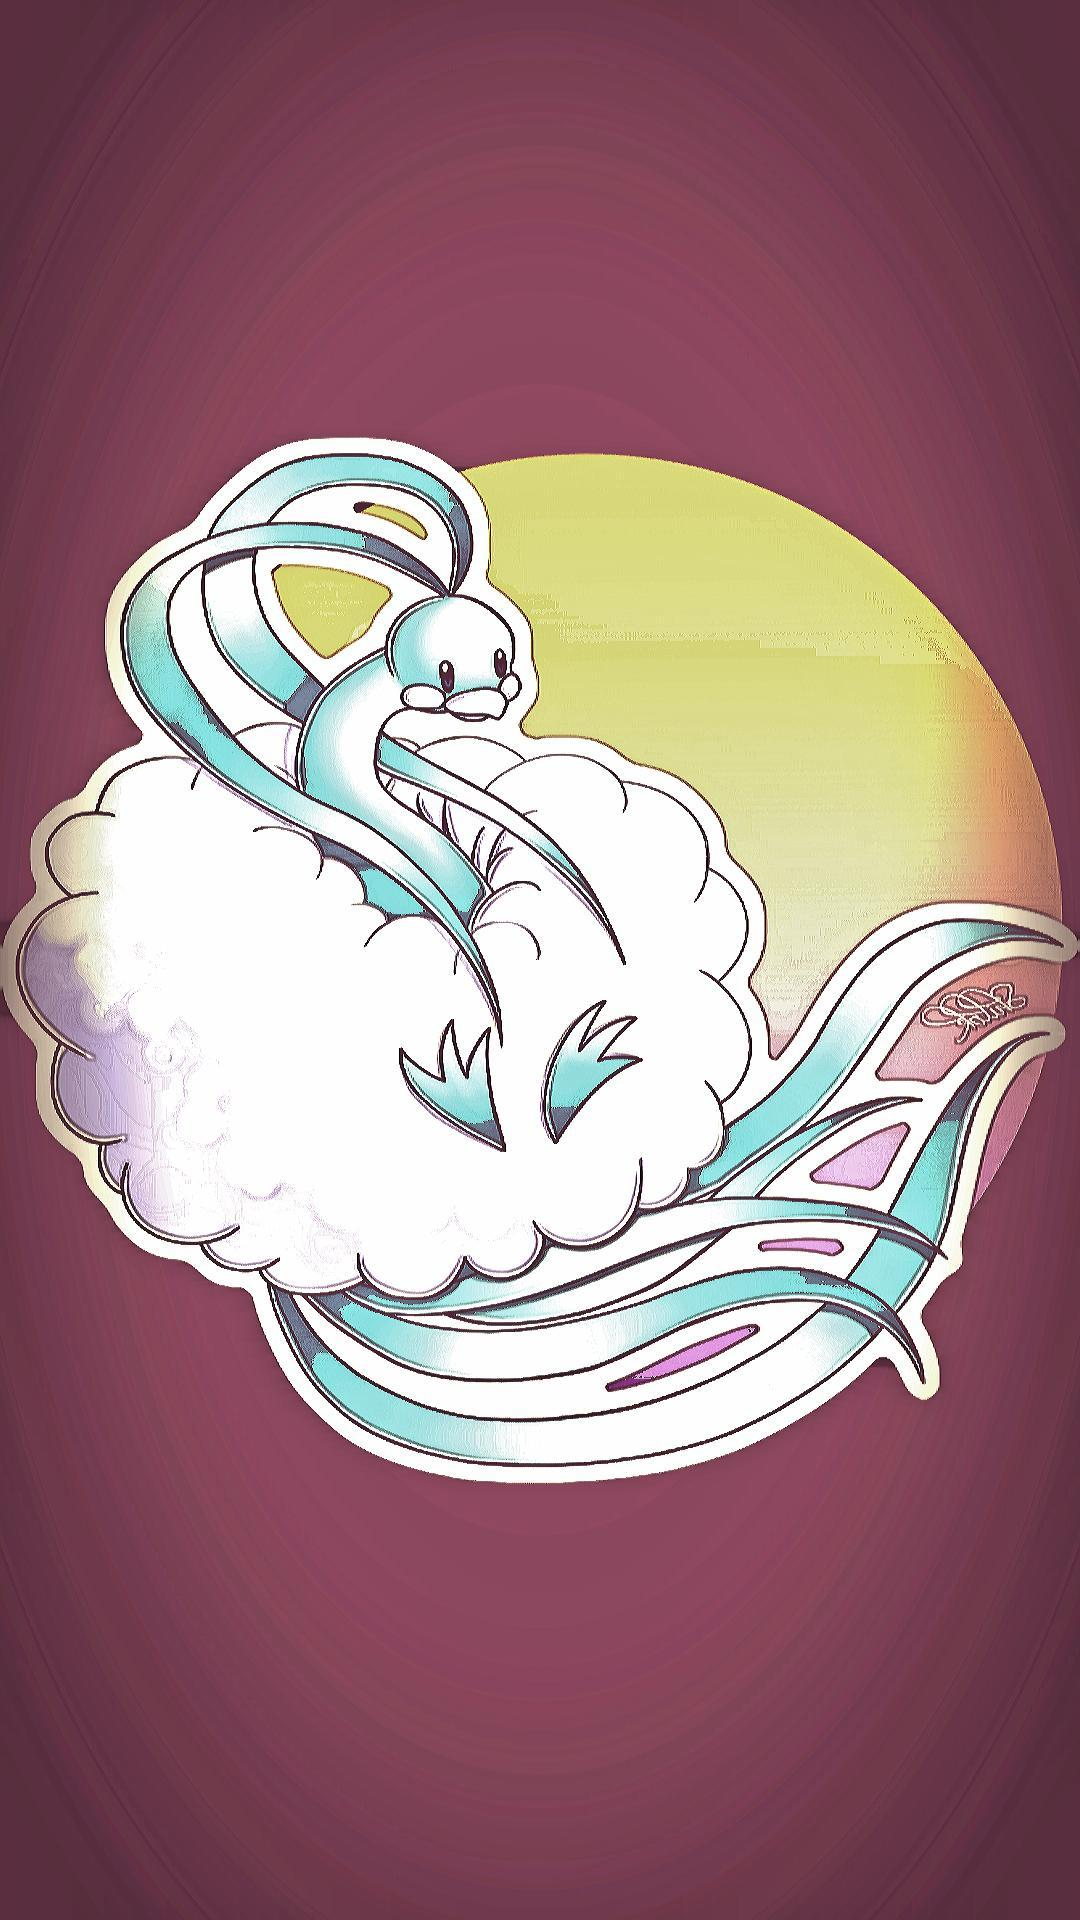 An edit of Altaria for a phone wallpaper, requested by Tolstar : pokemon